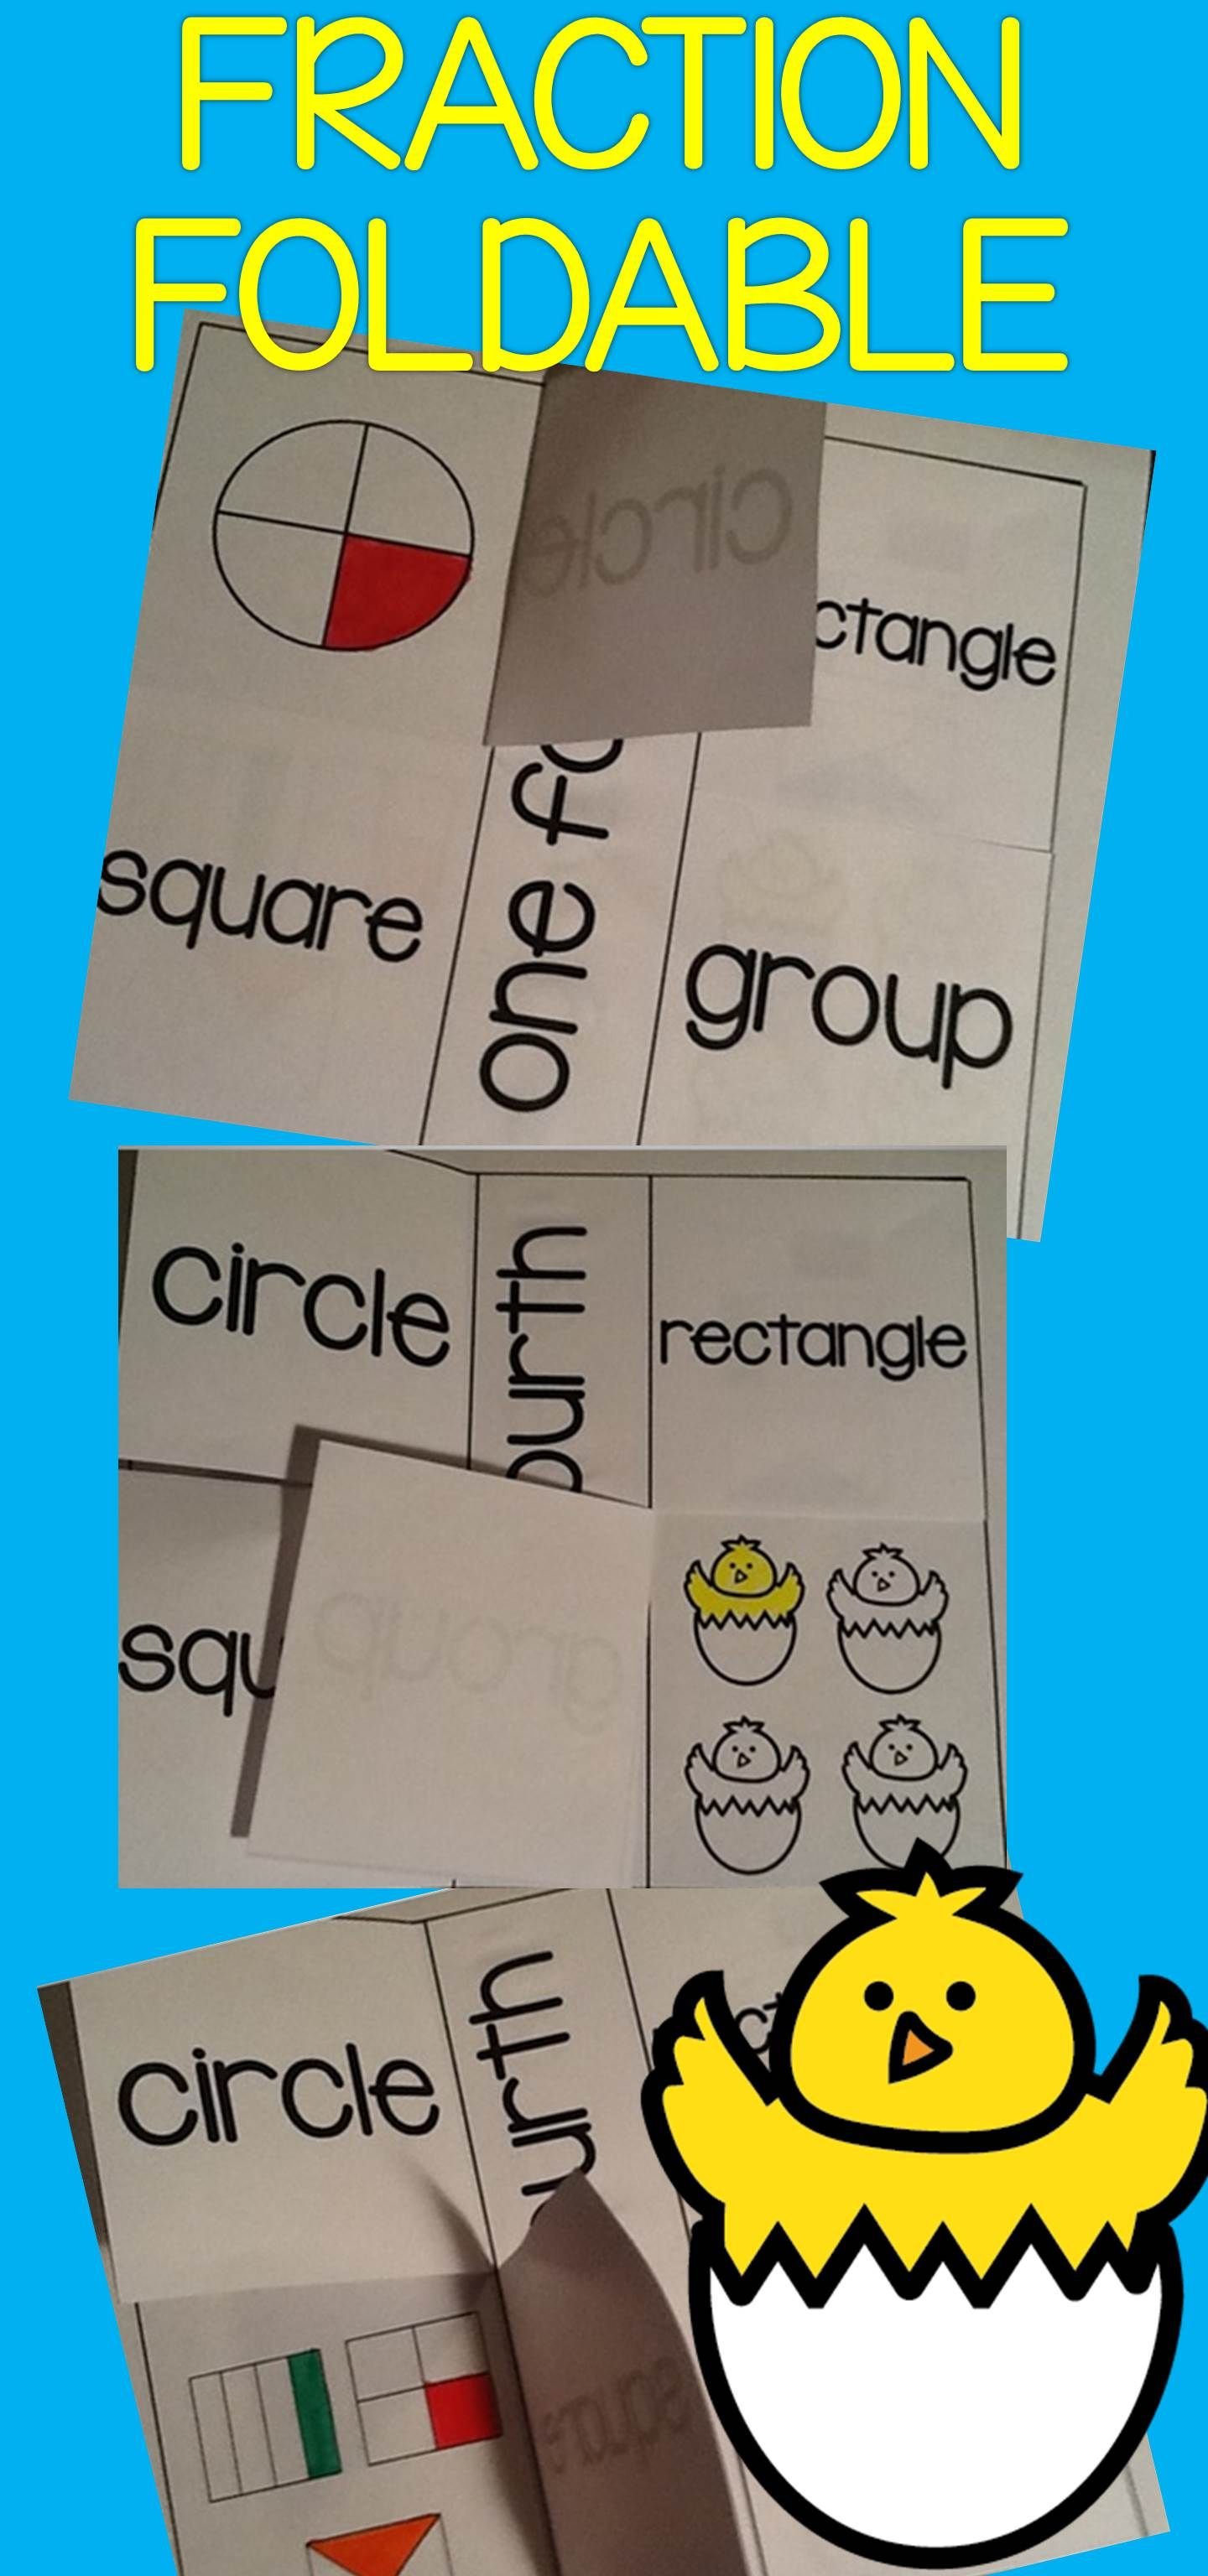 Spring fraction foldable colors pictures of and circles